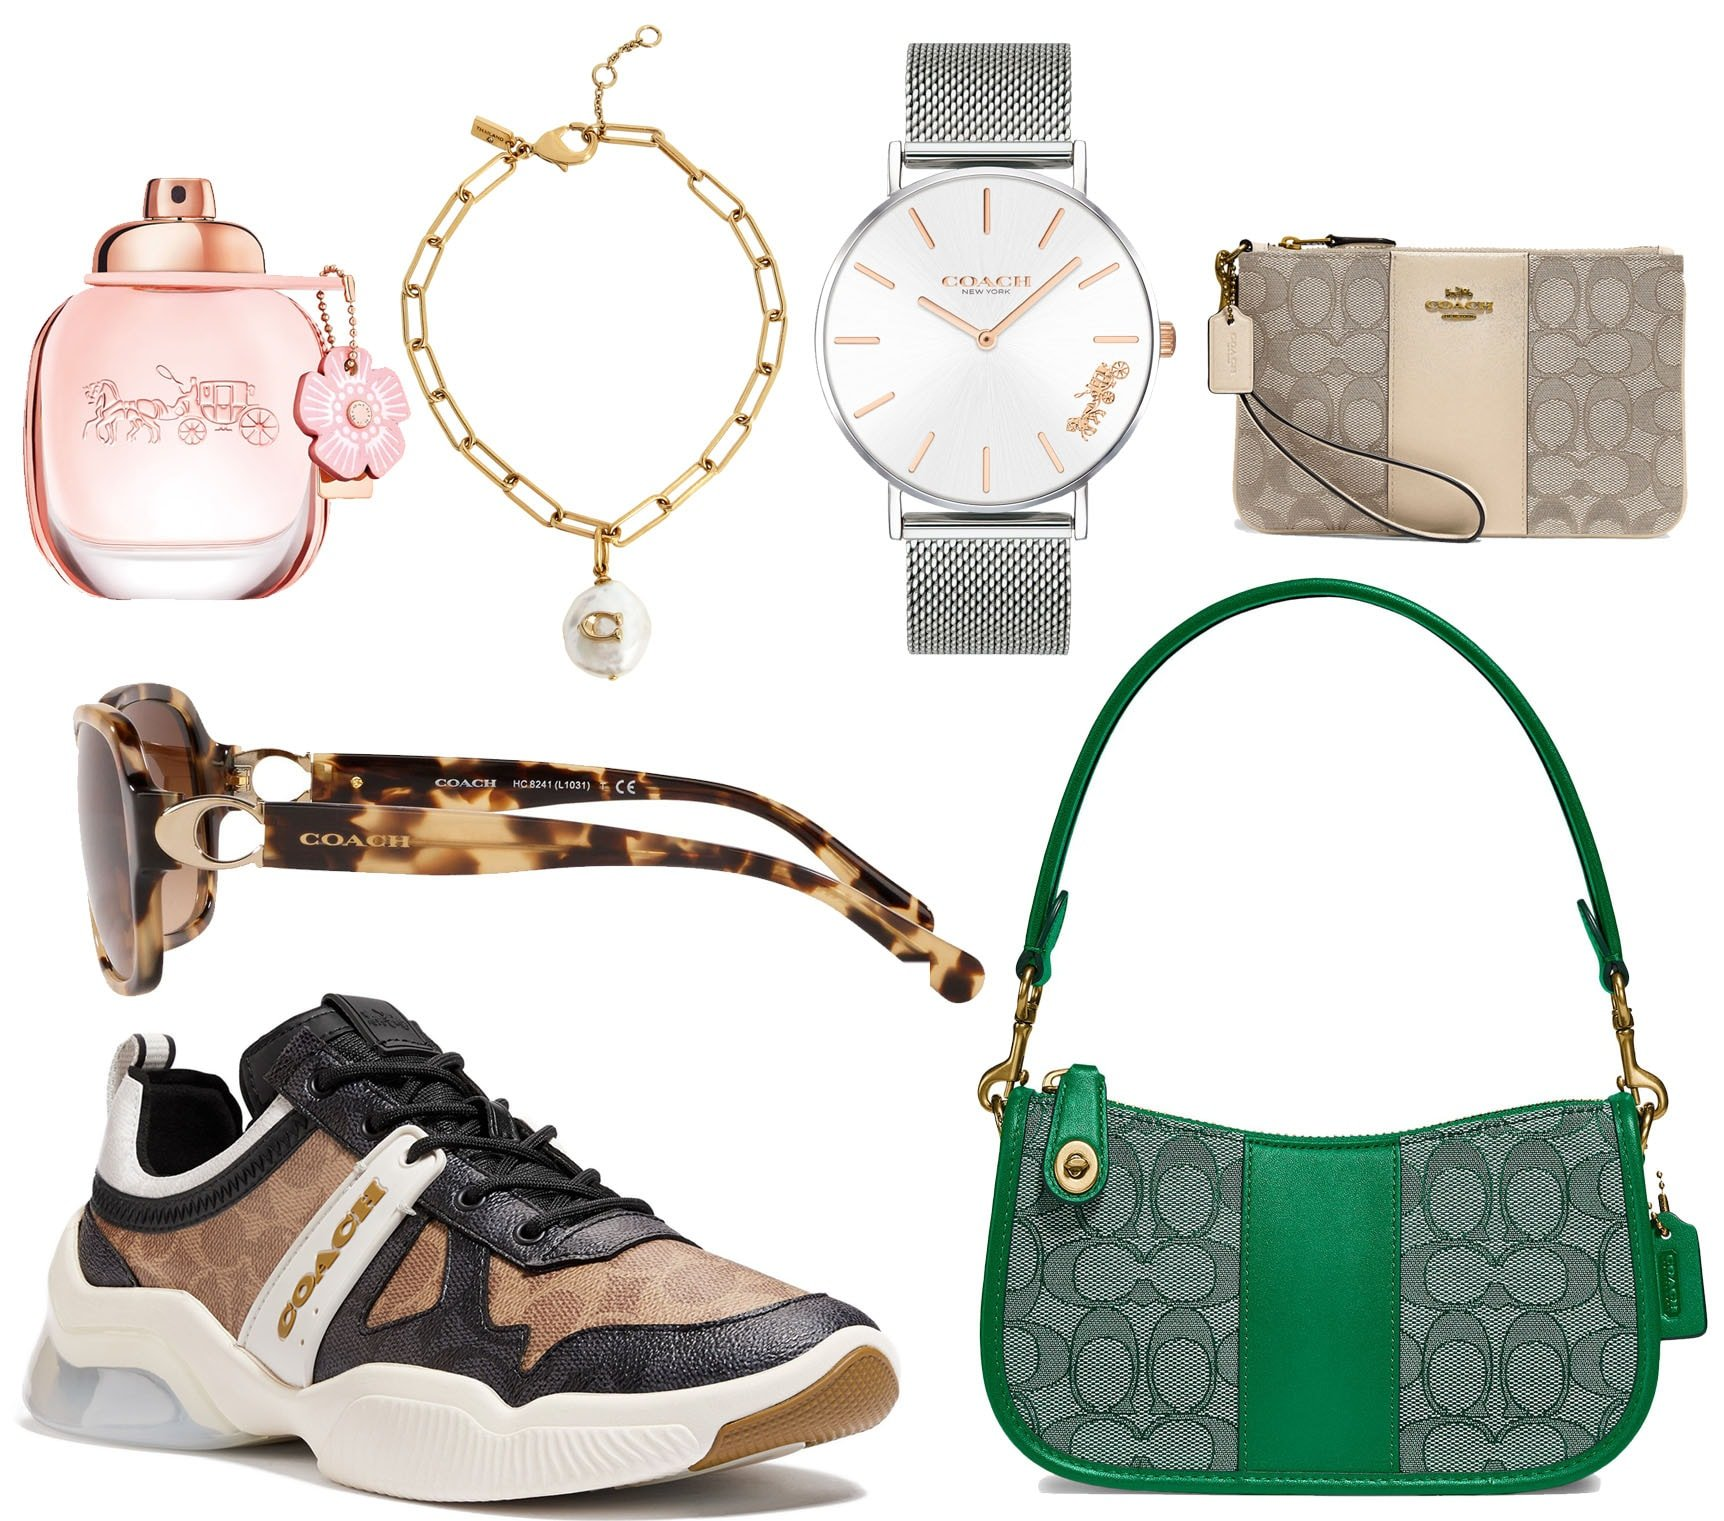 While Coach is famous for its leather goods, the brand also has an array of accessories, including watches, jewelry, sunglasses, and perfumes